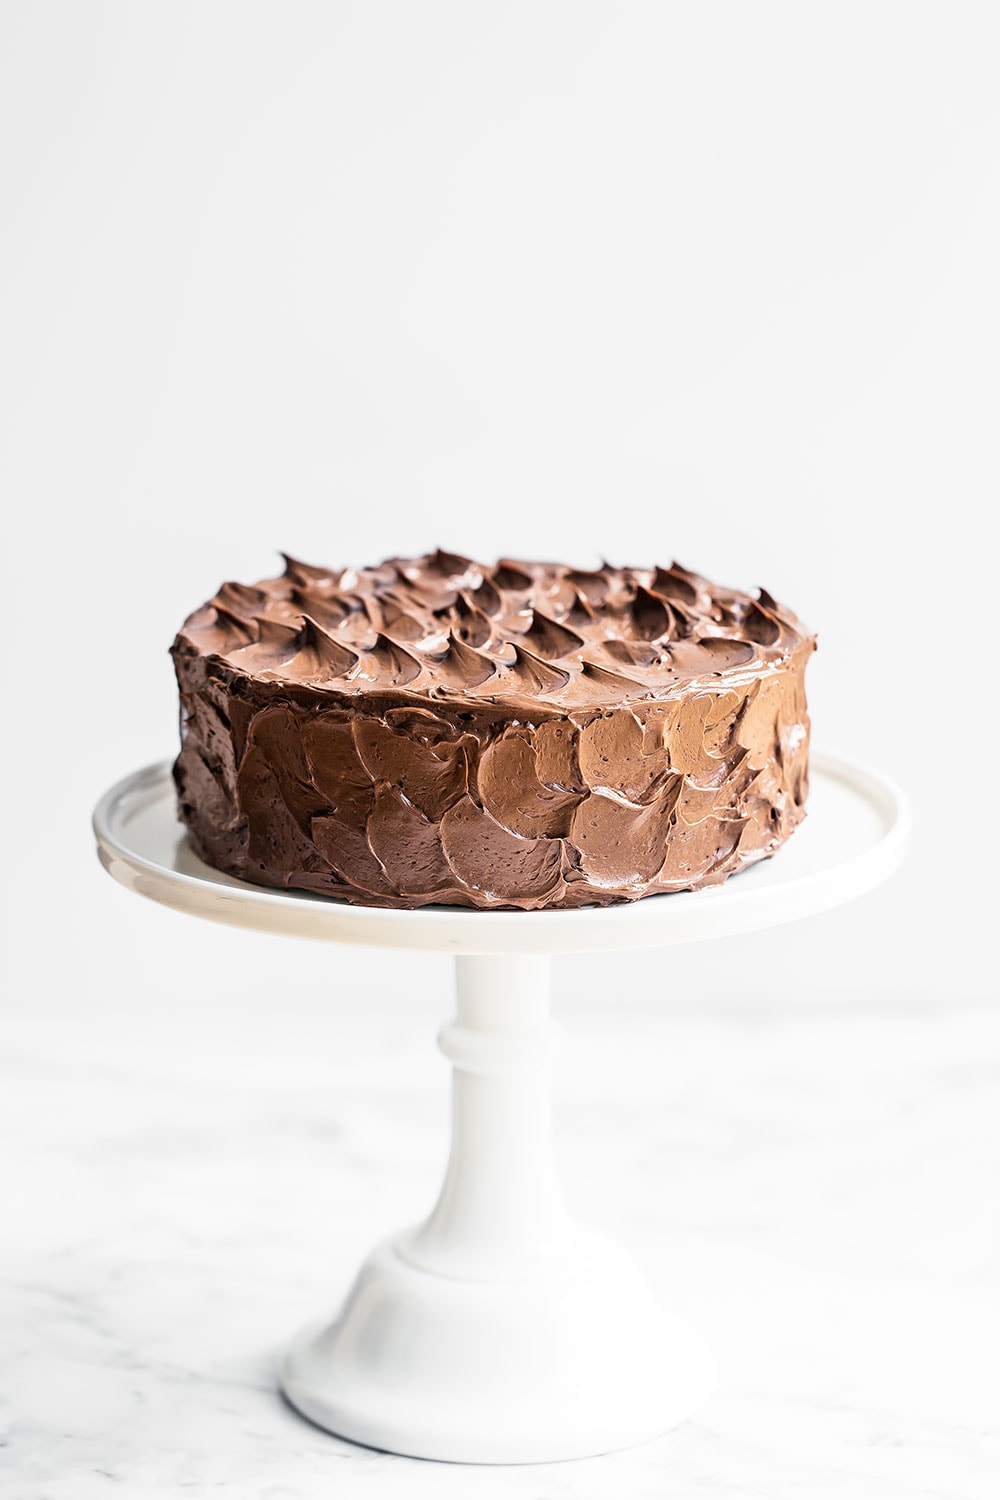 Best Chocolate Cake with Swiss Meringue Buttercream on a cake stand